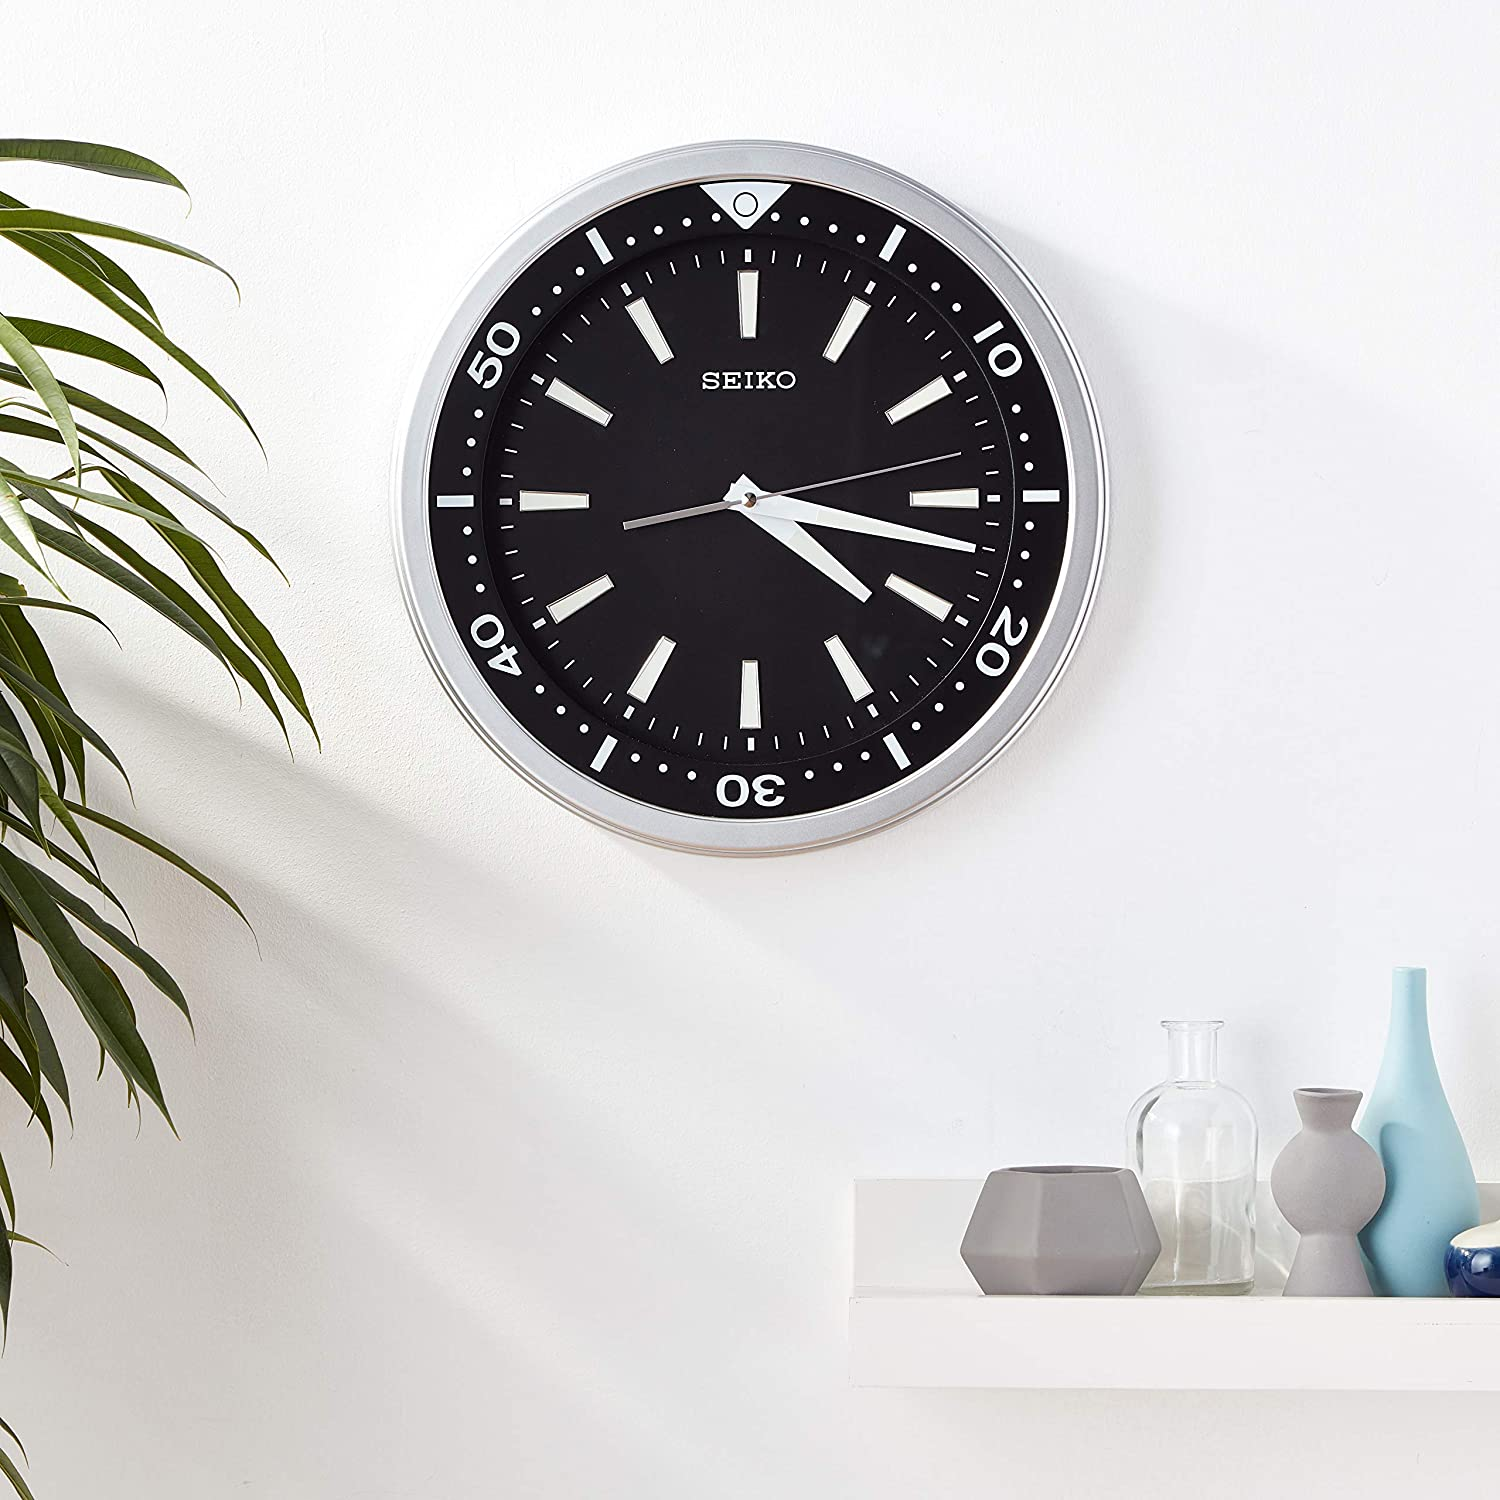 Seiko 14 Ultra Modern Watch Face Black Silver Tone With Quiet Sweep Wall Clock Amazon Co Uk Kitchen Home